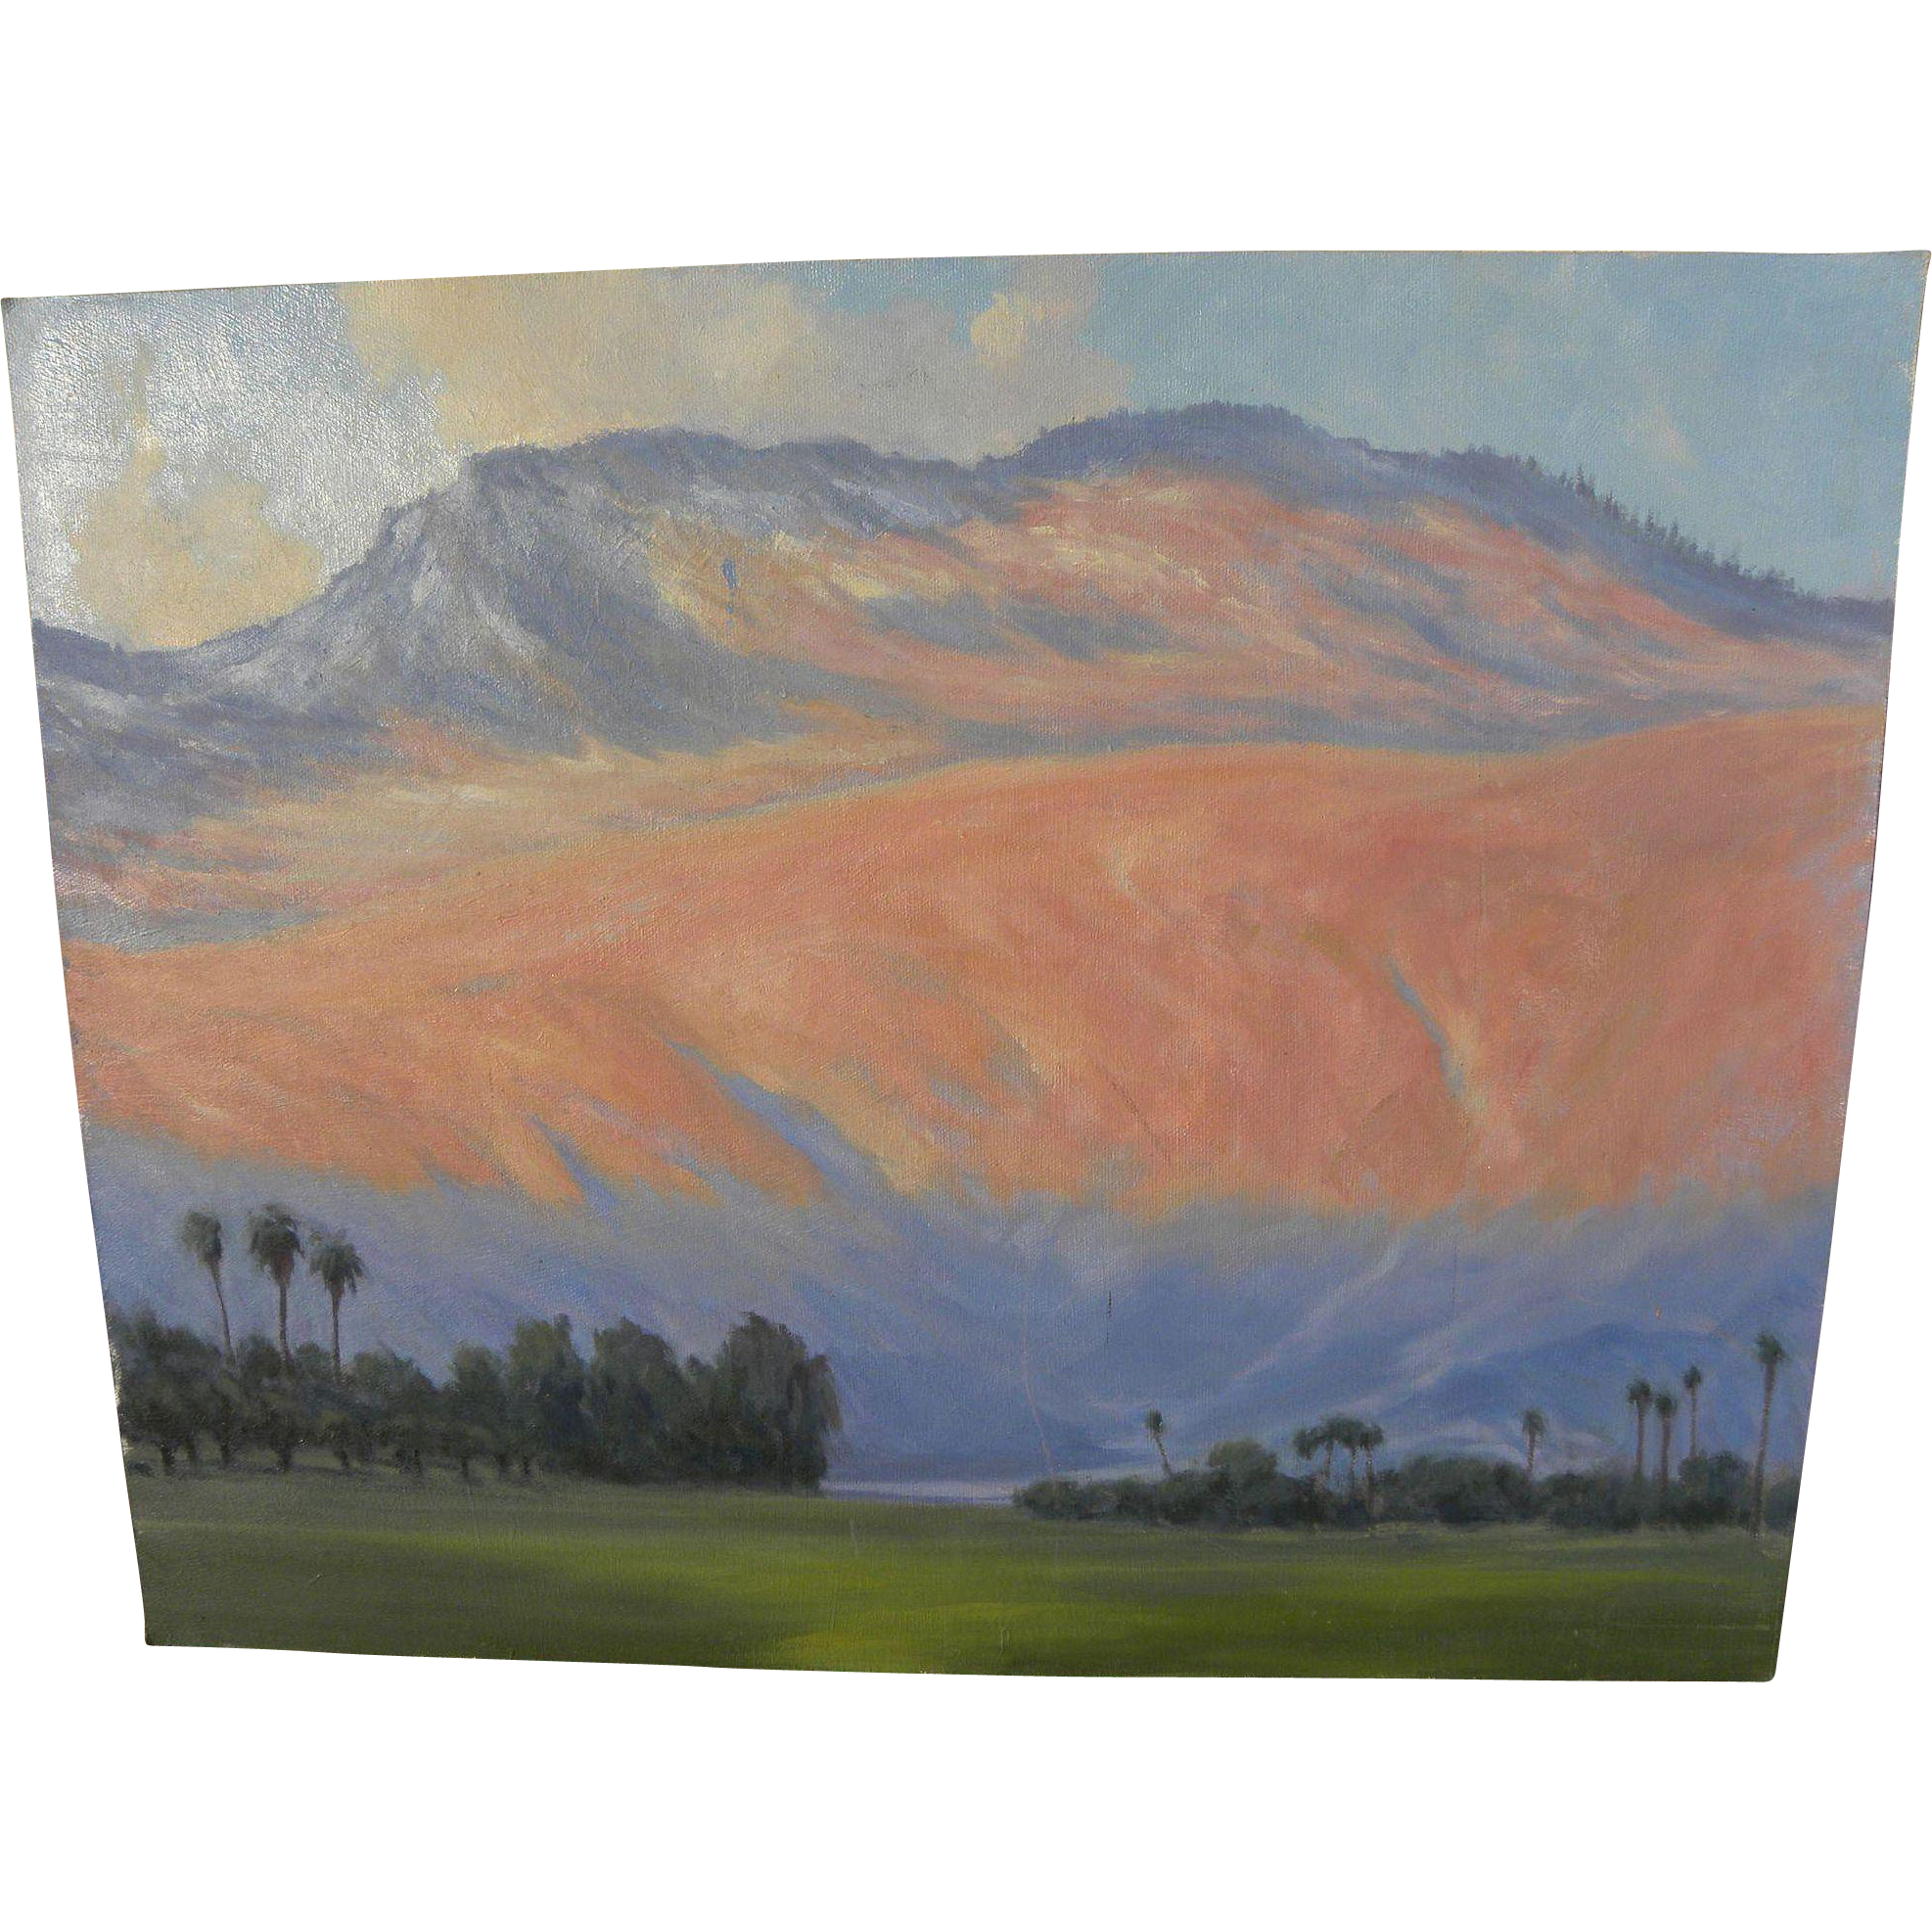 California plein air art contemporary impressionist painting of Palm Springs area desert golf course